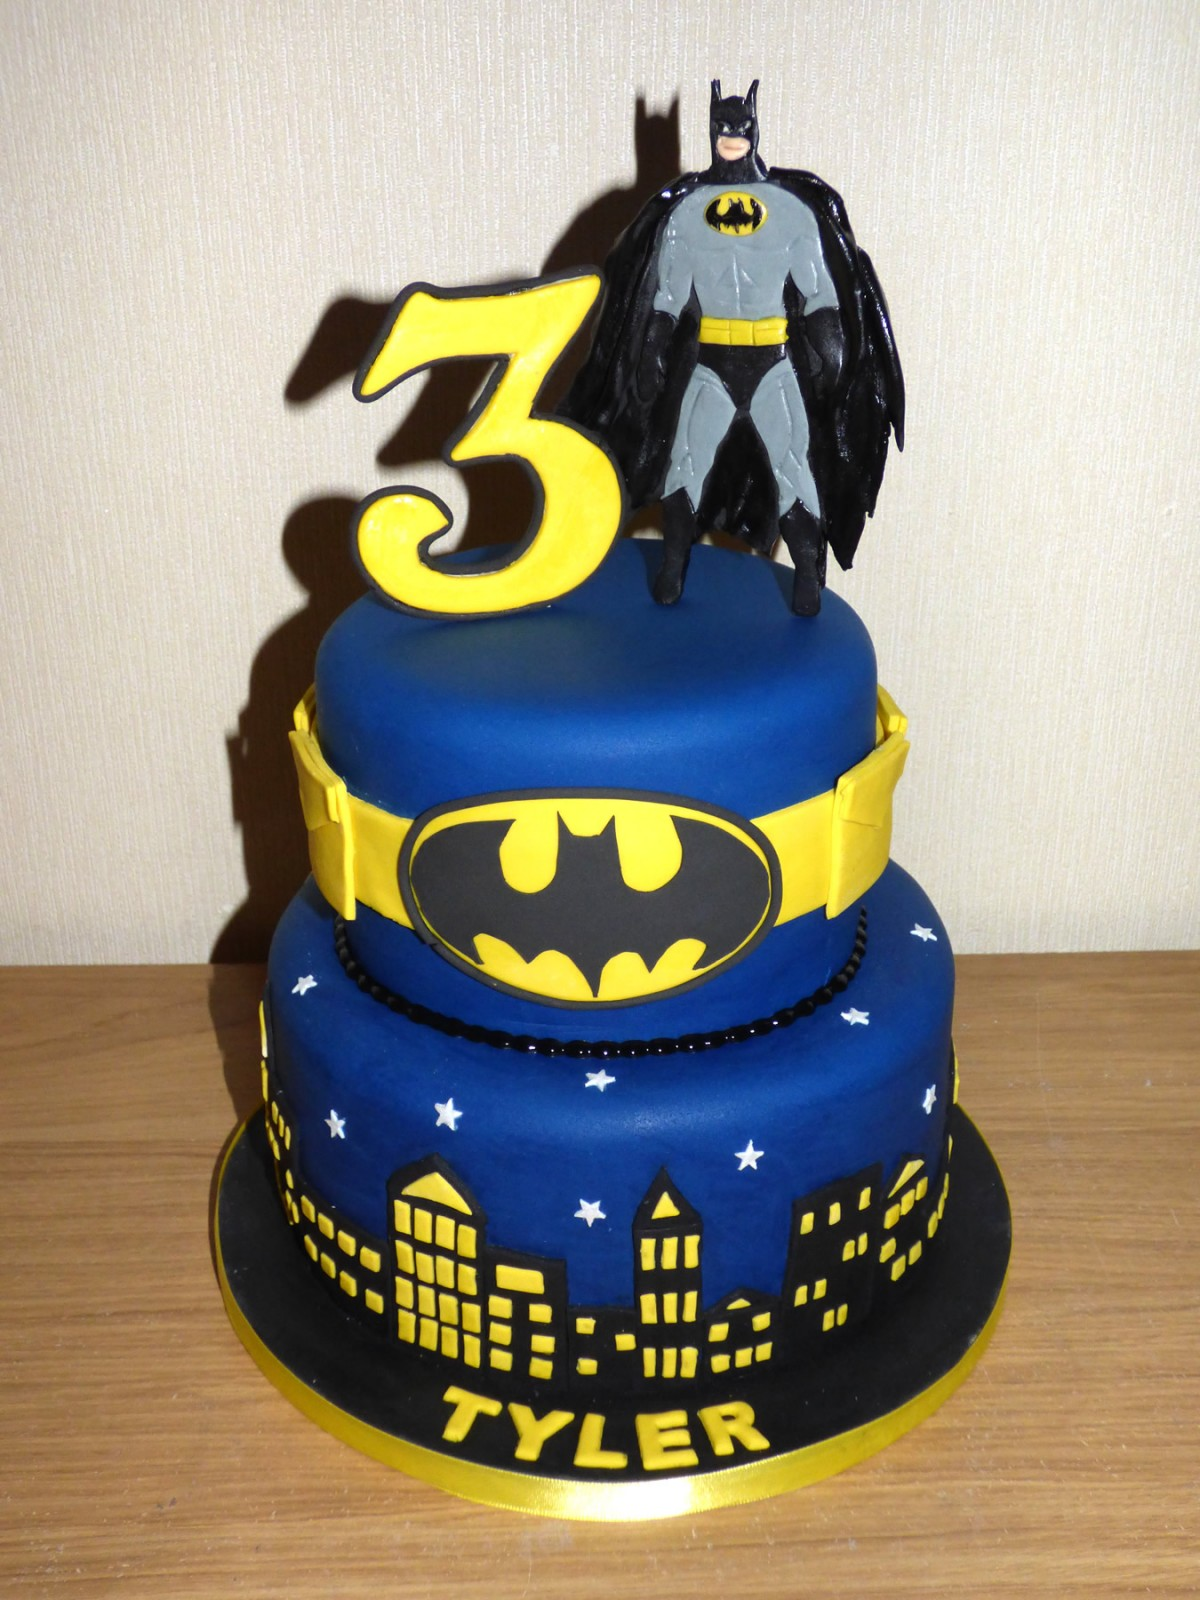 2 Tier Batman Themed Birthday Cake « Susie's Cakes